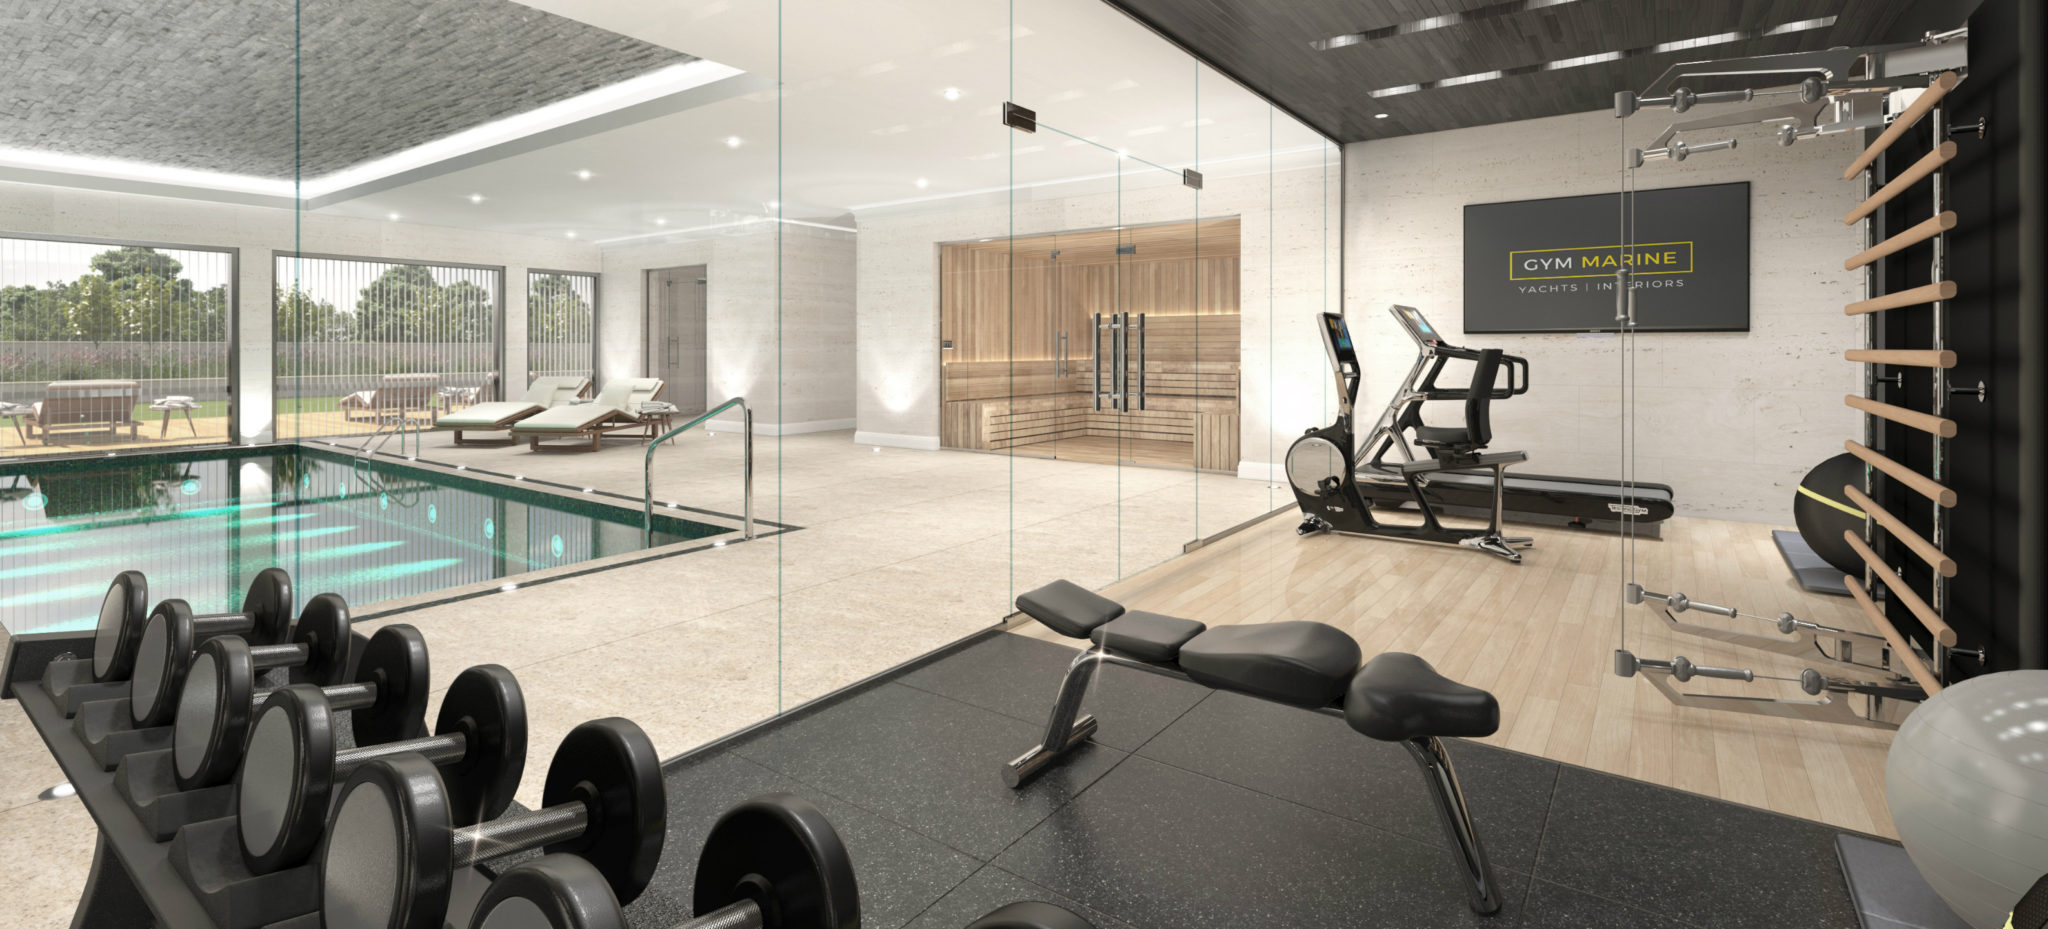 Home Gym Design: Buy Gym Equipment - Gym